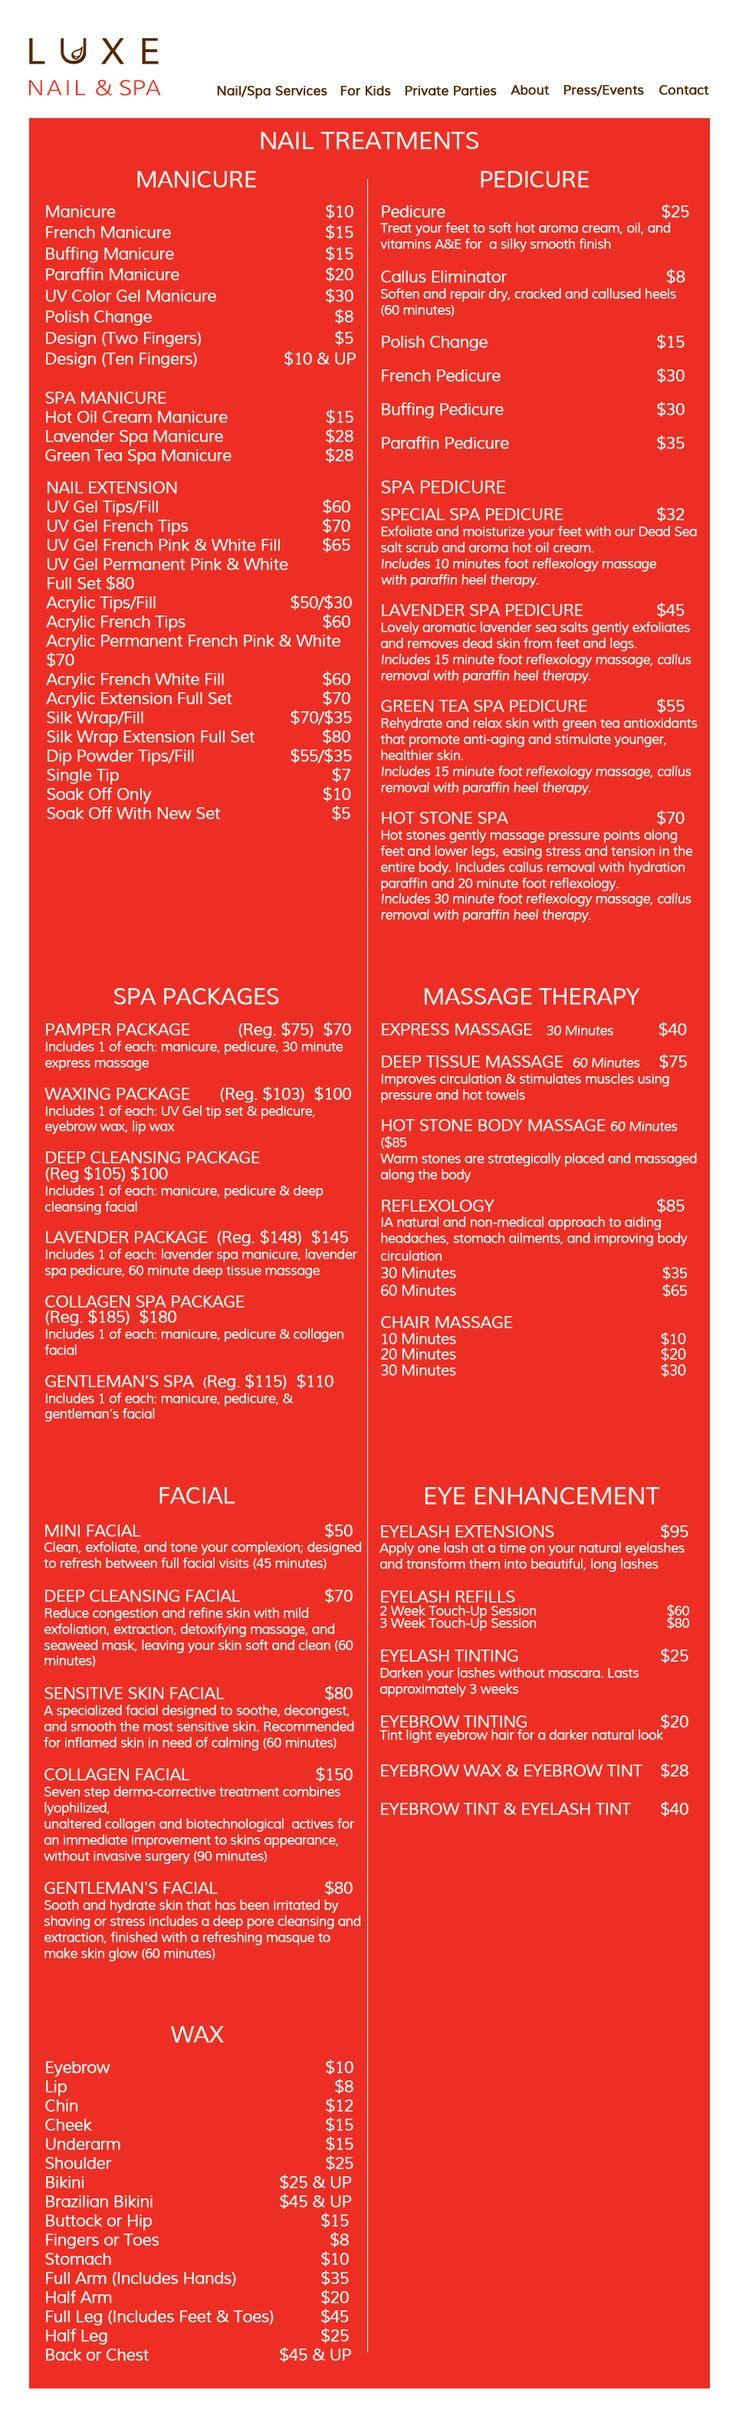 Nail/Spa Services: Manicure, Pedicure, Spa Packages, Massage Therapy, Facial, Eye Enhancement and Waxing Nail Design, Nail Art, Nail Salon, Irvine, Newport Beach